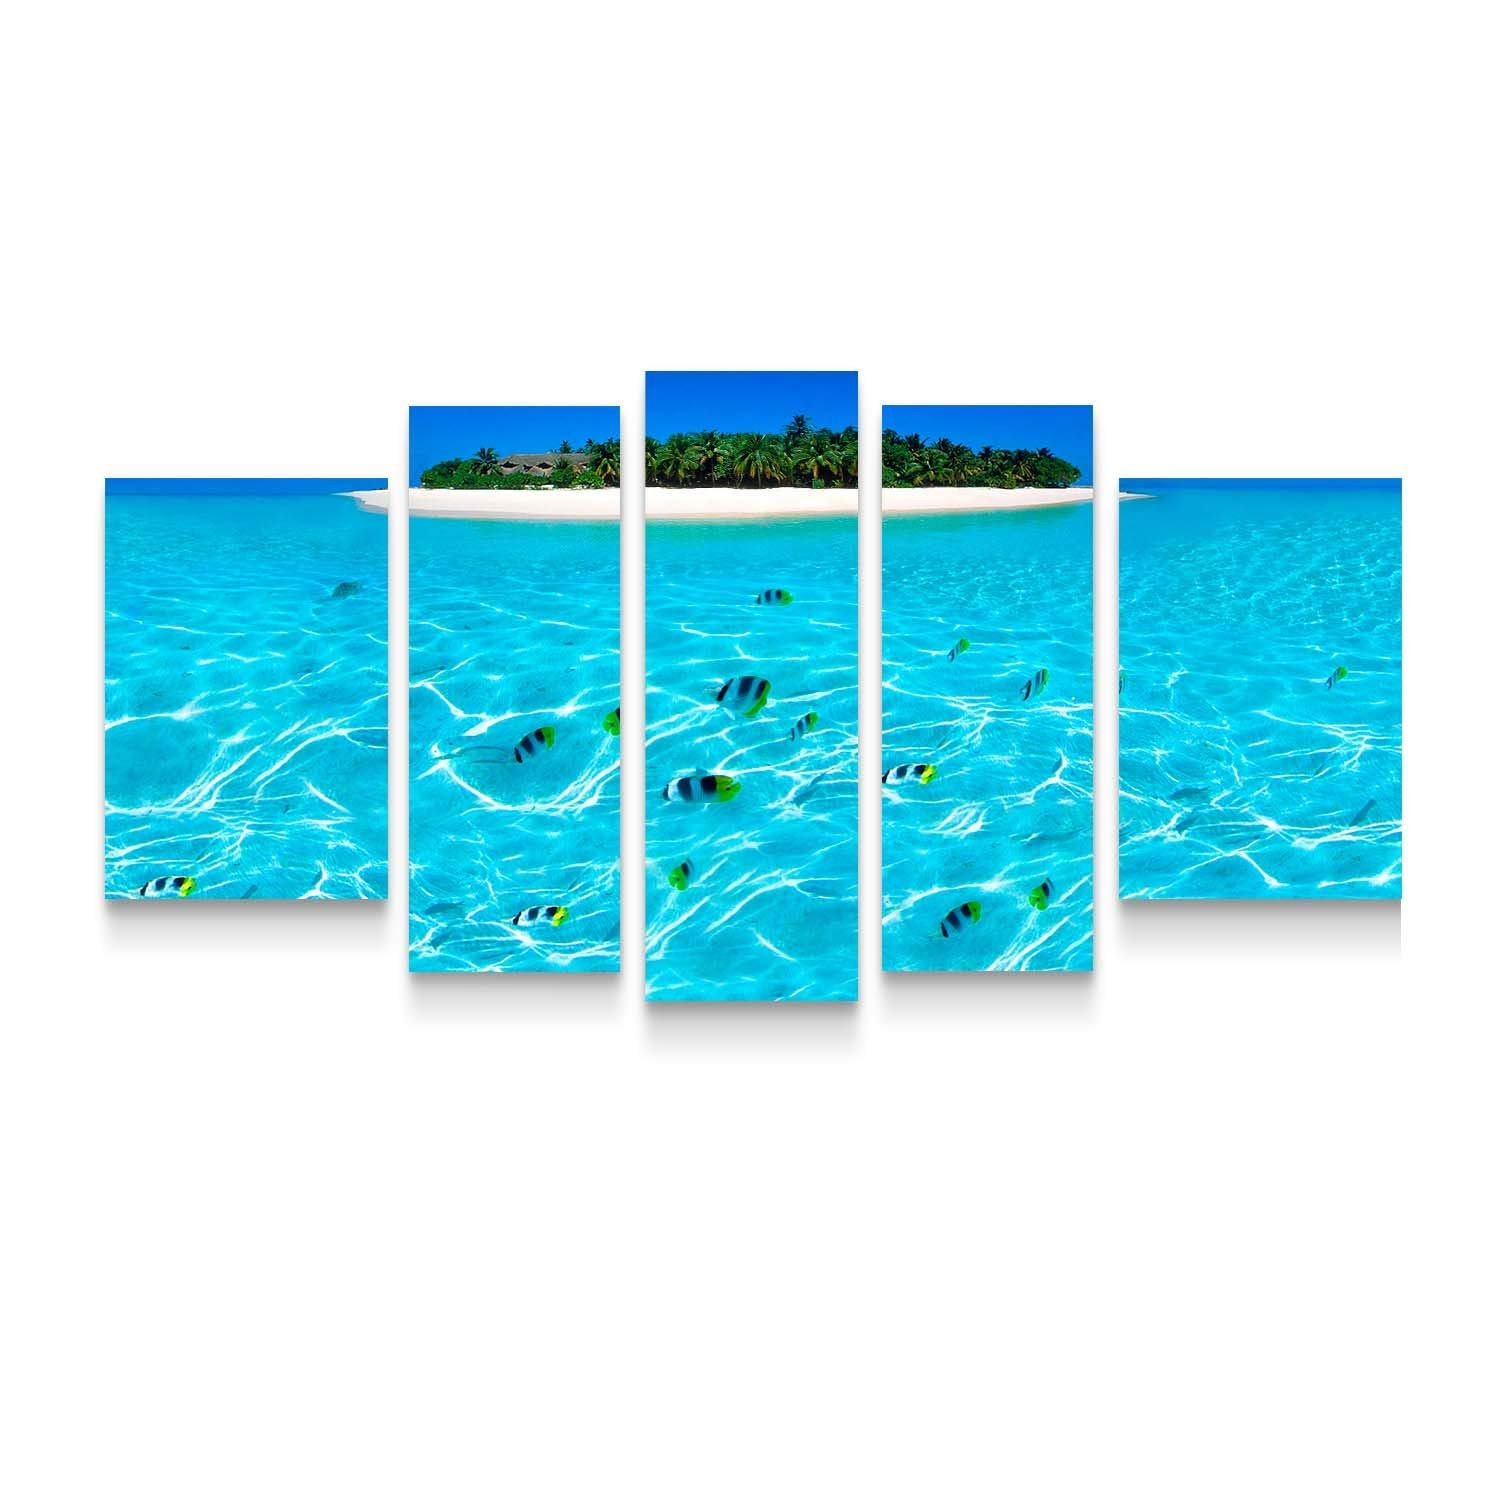 Startonight Canvas Wall Art Island - Water Framed Set of 5 Large 36 x 71 Inches